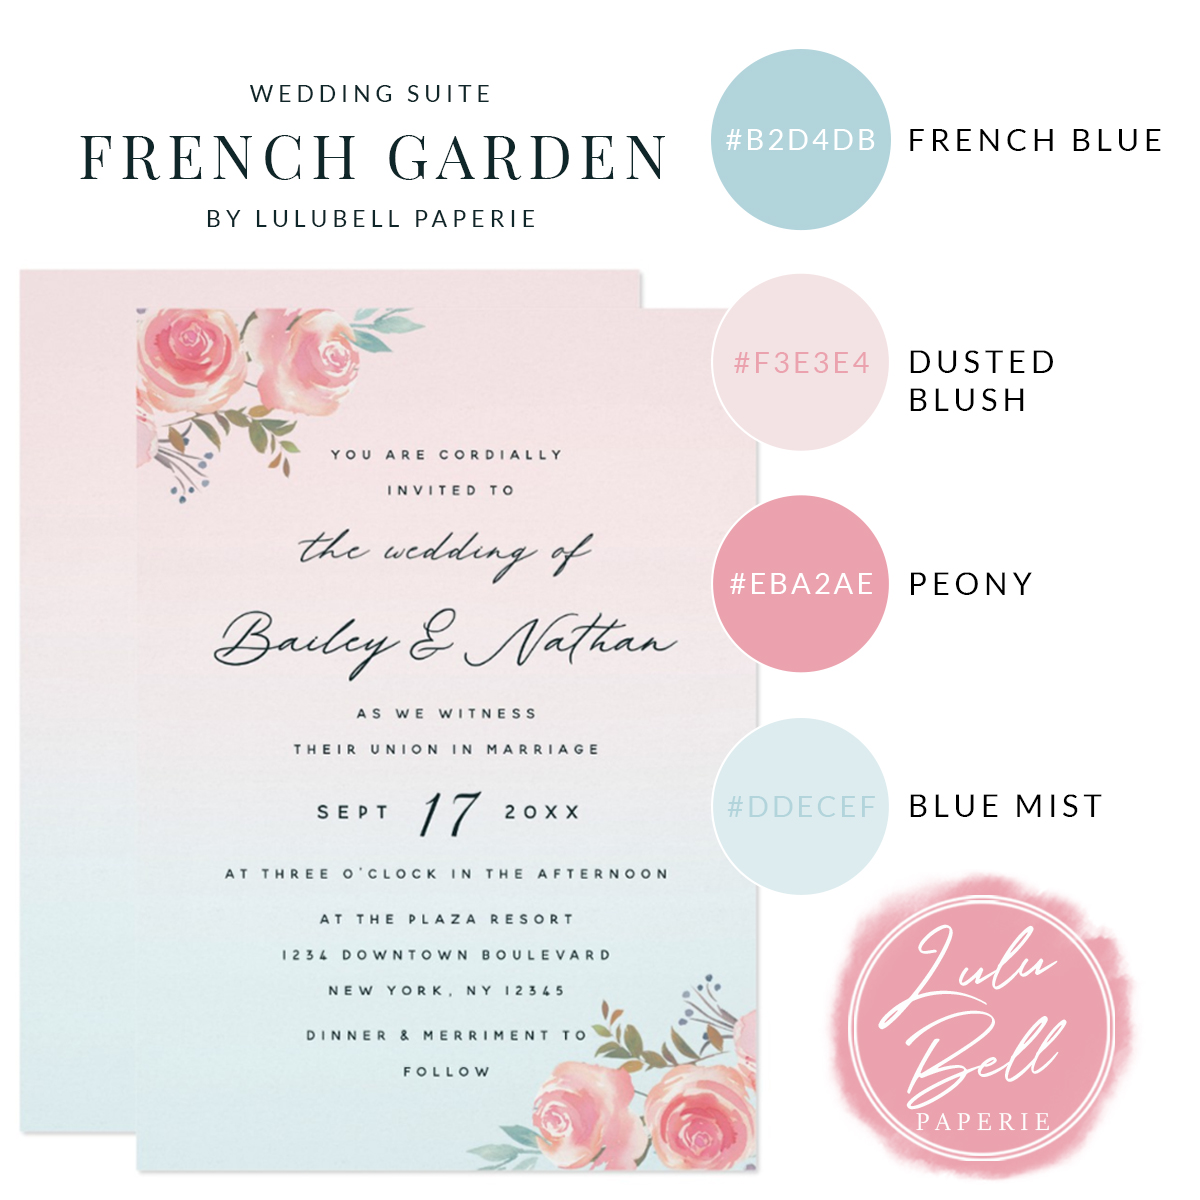 French Garden Floral Wedding Suite - Elegant Calligraphy Wedding Invitations and Color Swatches